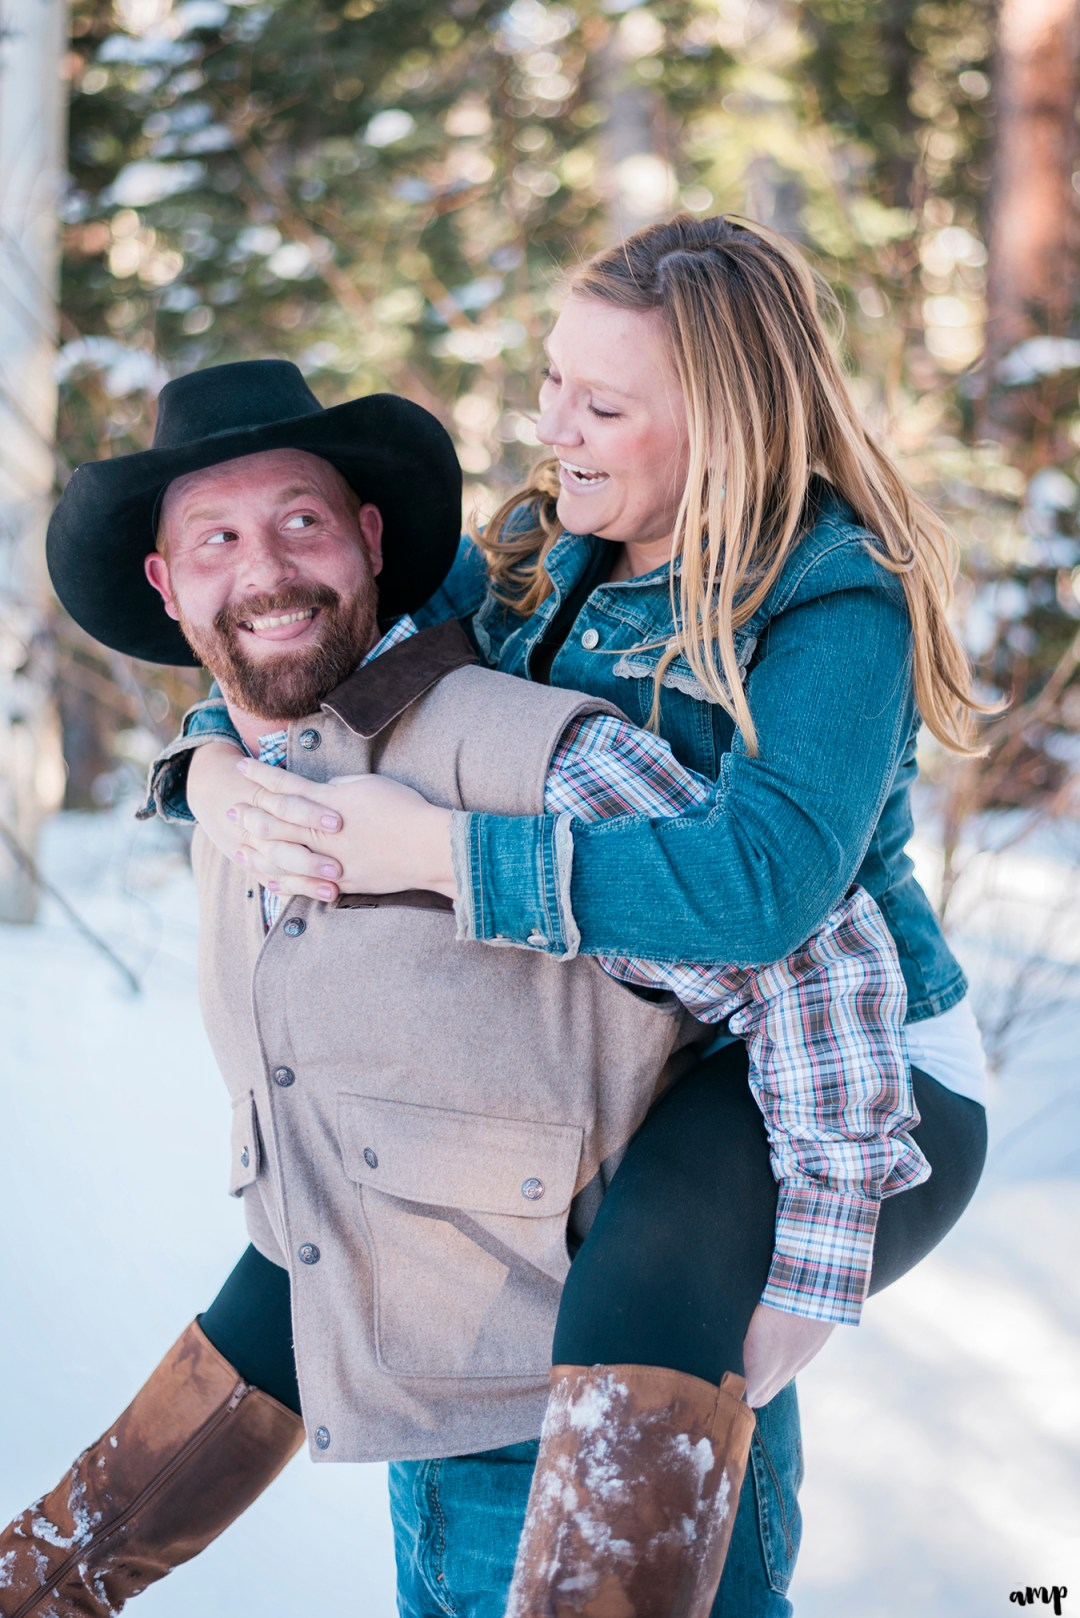 Engaged couple in piggy back ride laughing at each other